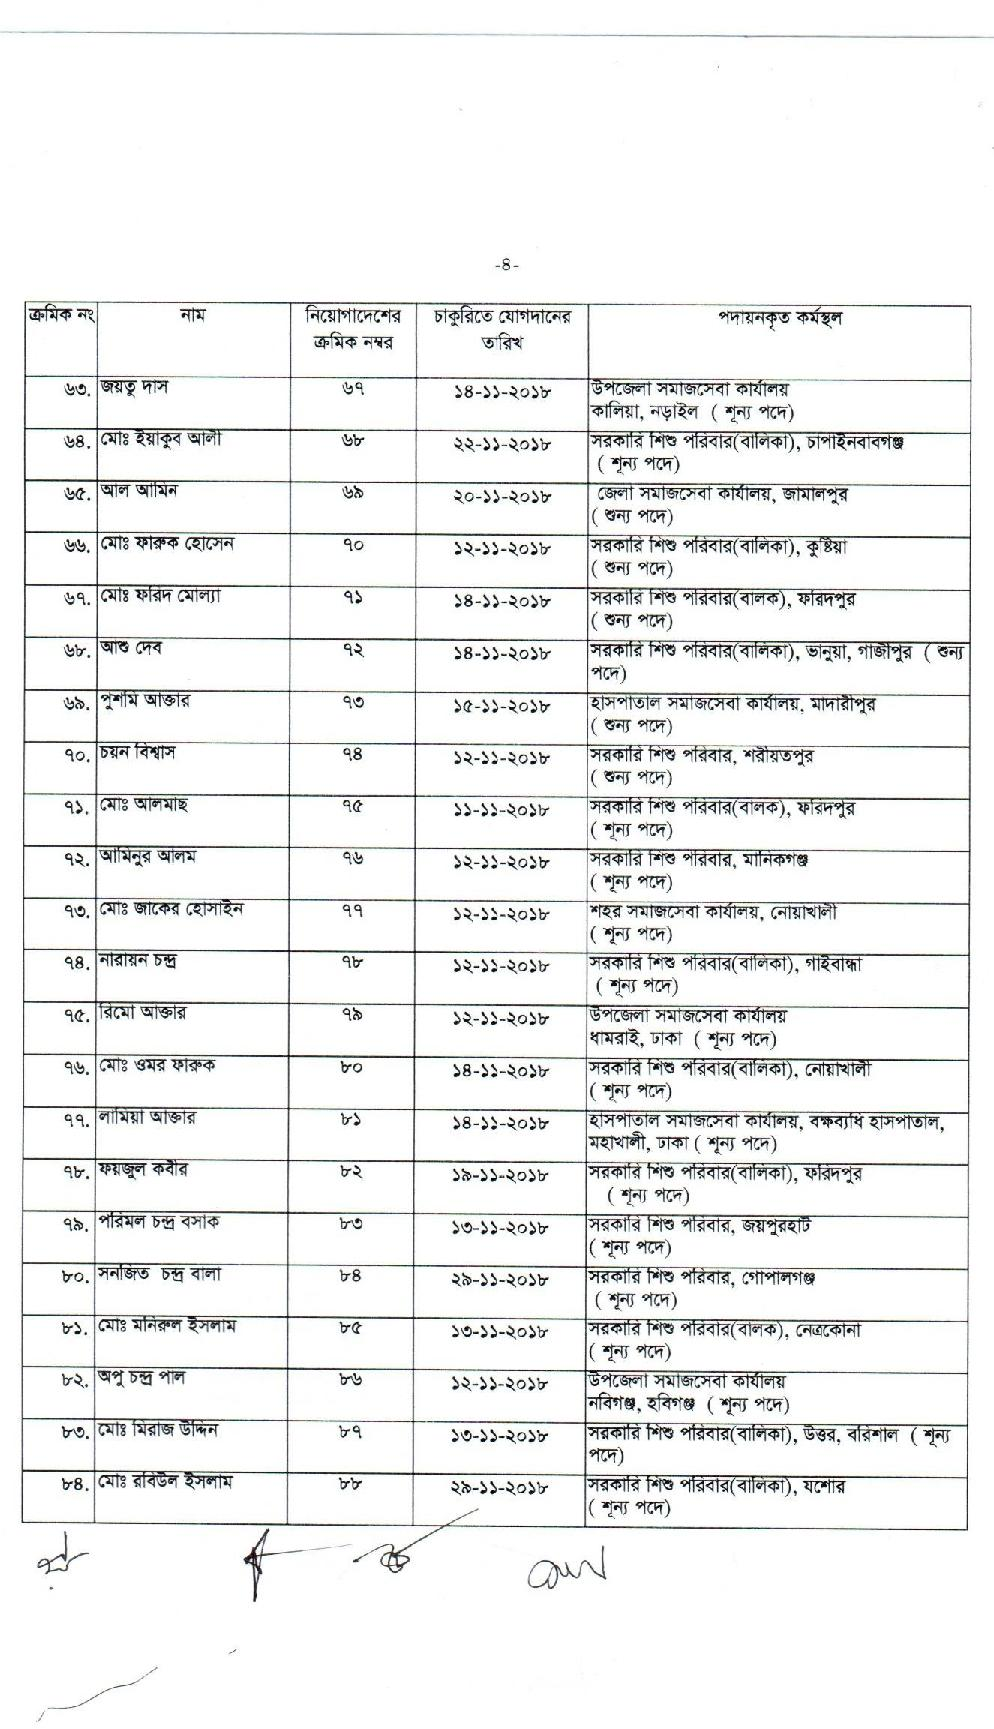 DSS Final Result And Appointment Circular 2018 3